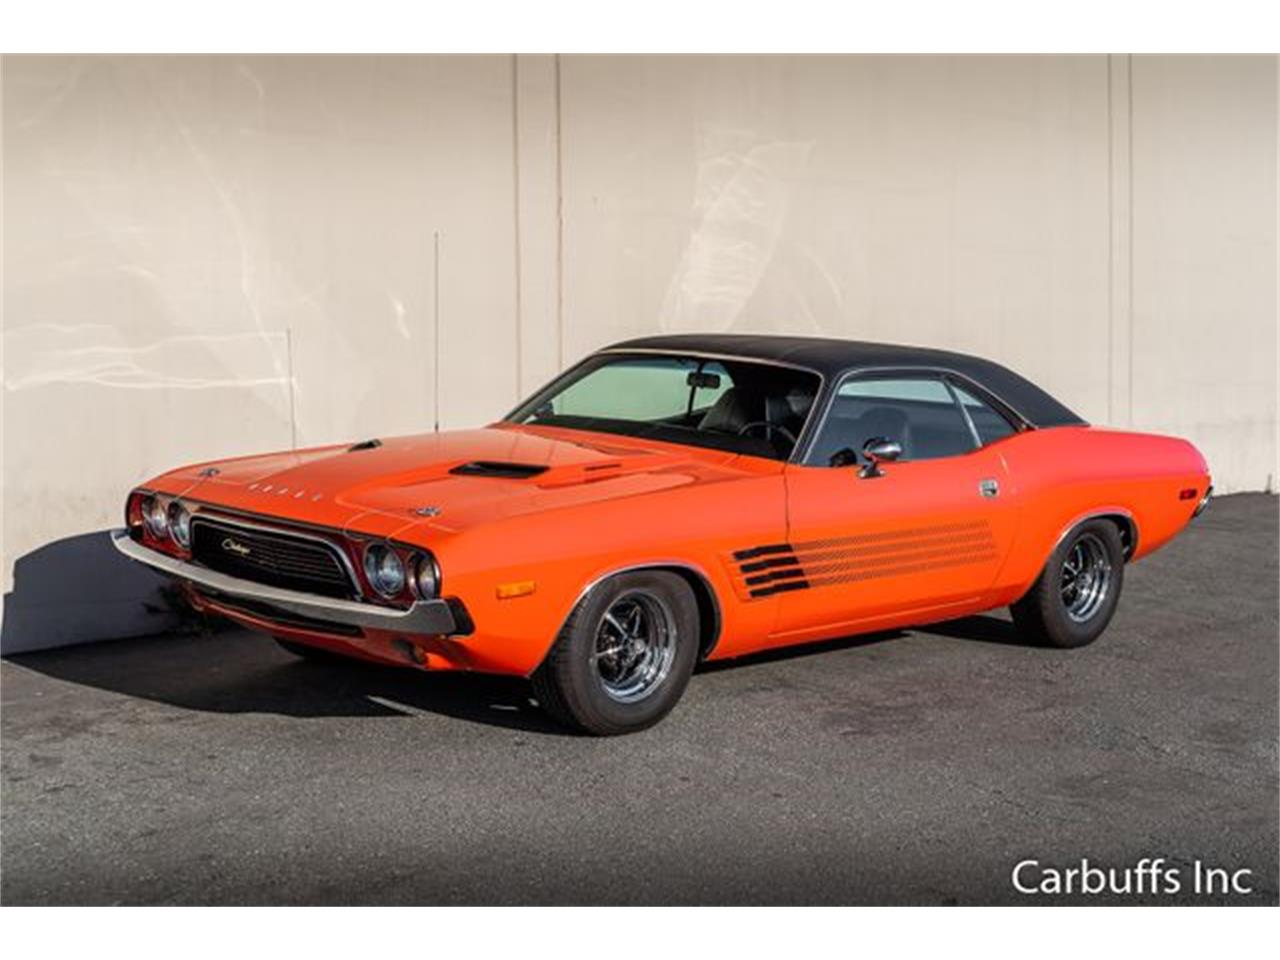 For Sale: 1973 Dodge Challenger in Concord, California